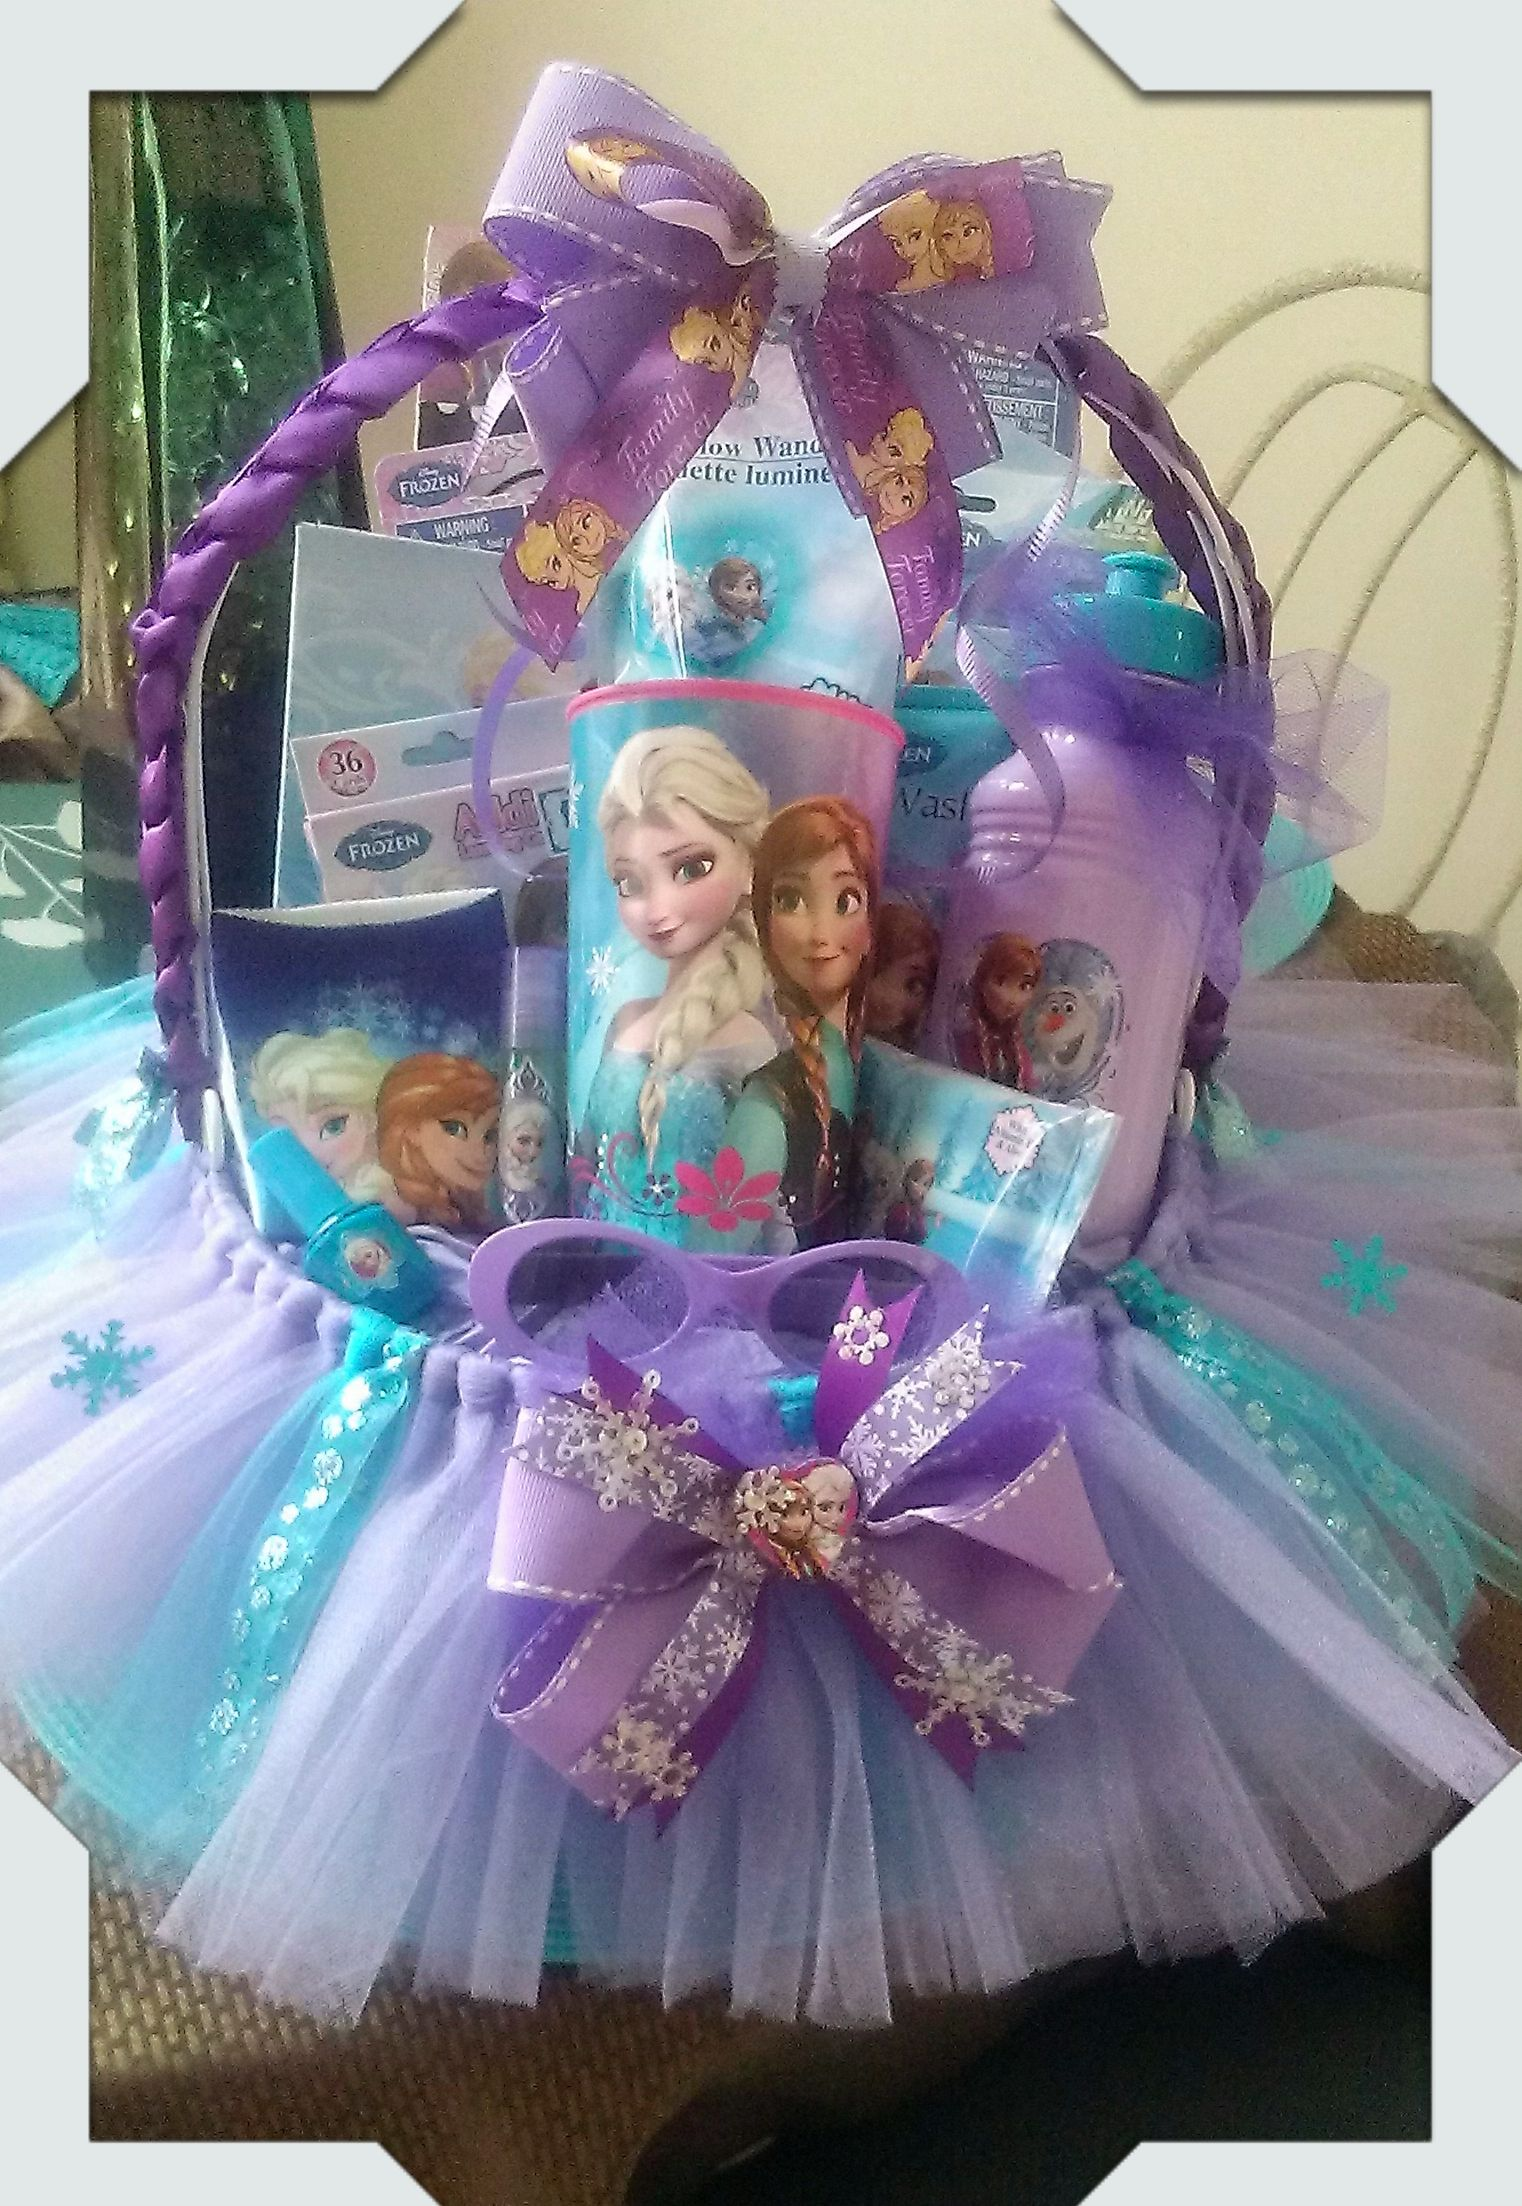 Frozen gift basket made by normas unique gift baskets frozen gift basket made by normas unique gift baskets negle Choice Image